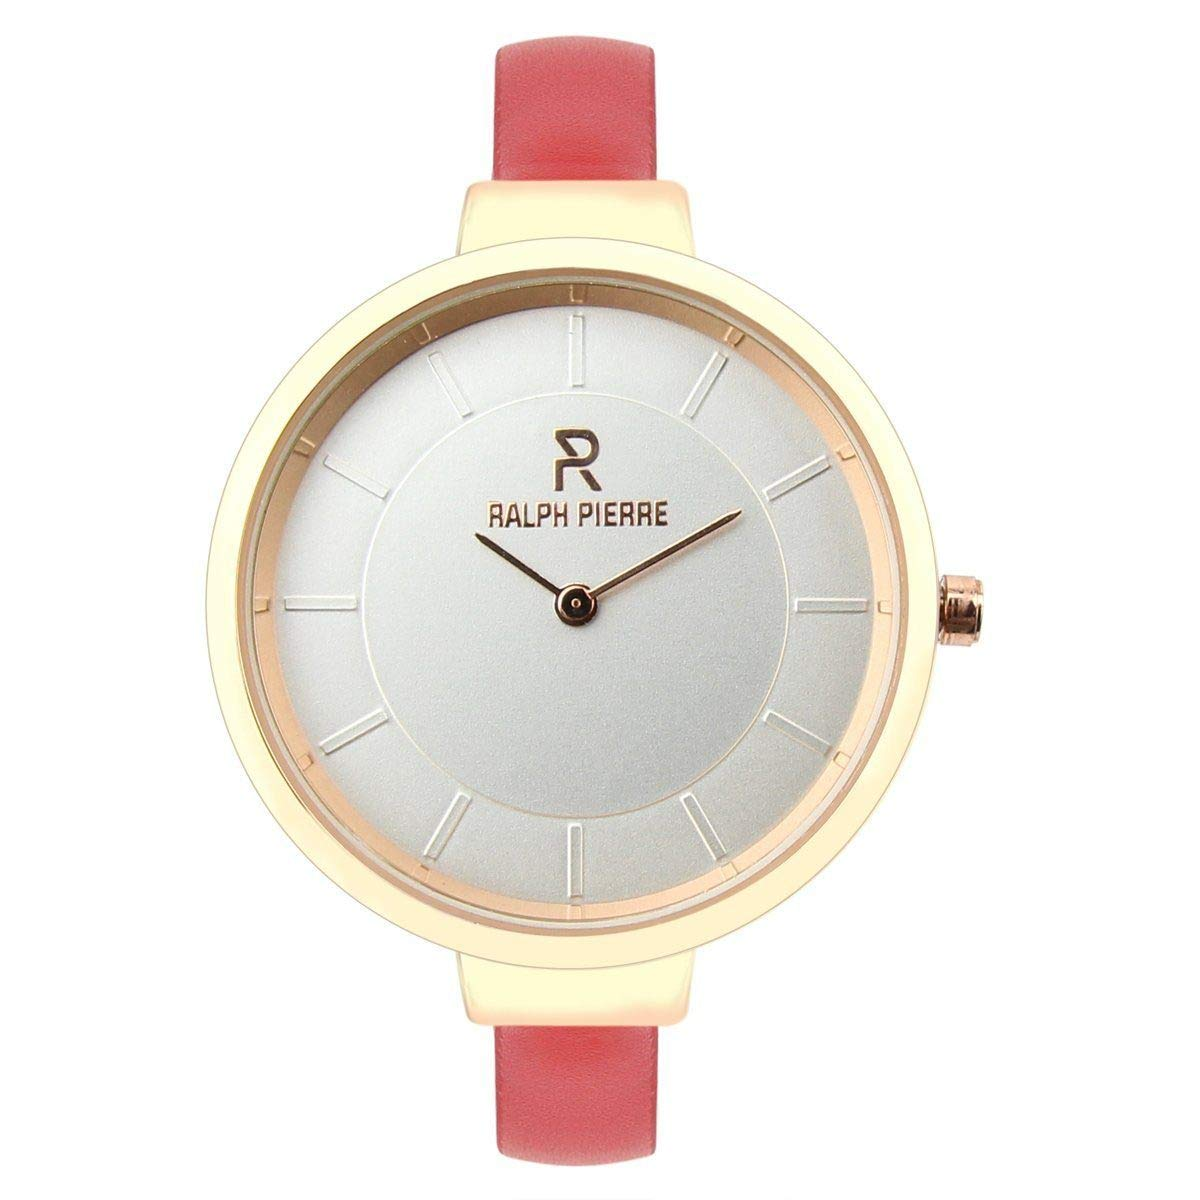 Ralph Pierre Sublime Analog Red Dial Women's Watch - RP5 (B07G92N35S) Amazon Price History, Amazon Price Tracker